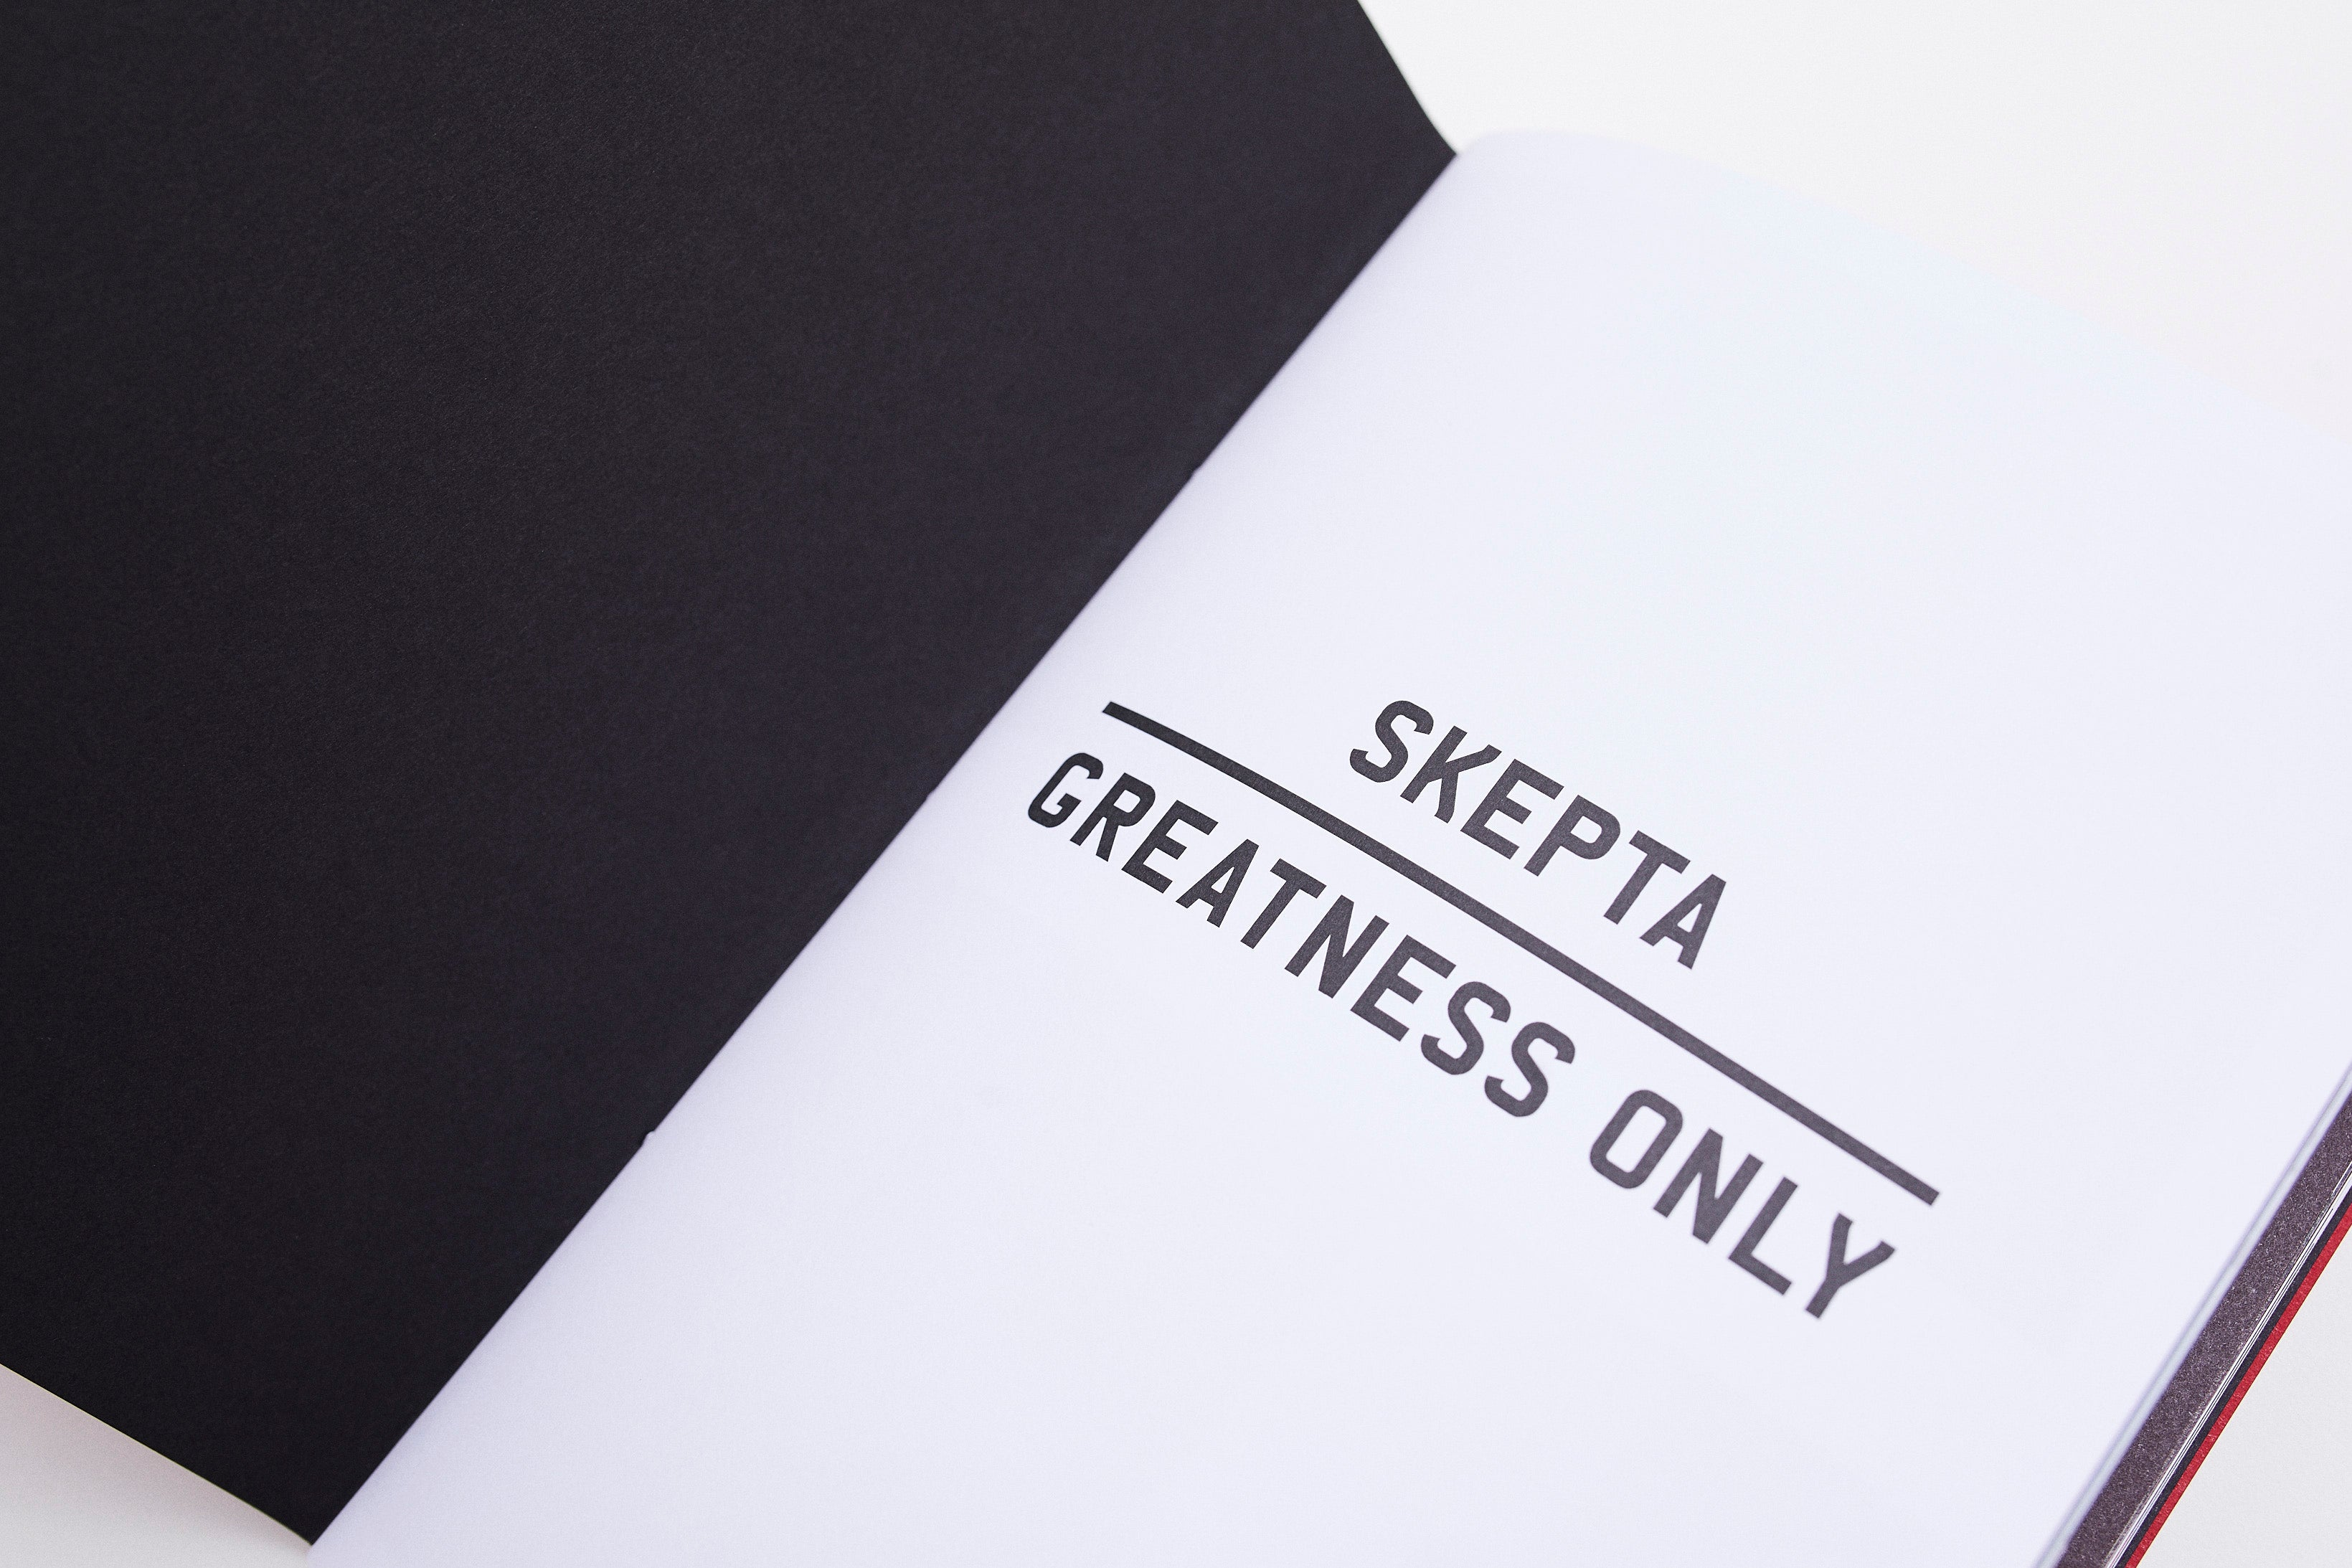 SOLD OUT - Skepta: Greatest Only - photobook